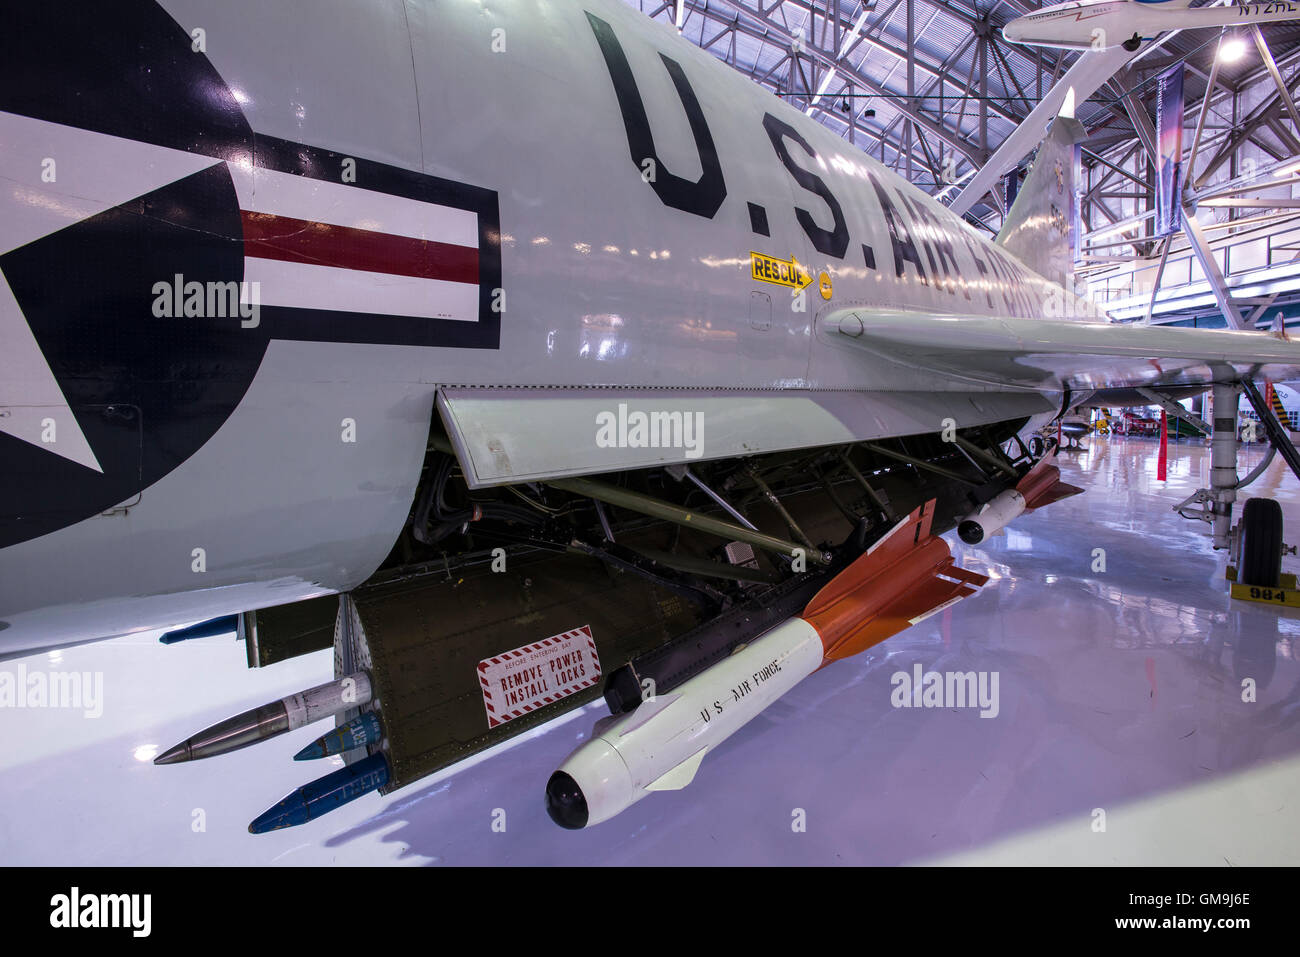 Hughes AIM-4D Falcon air-to-air missiles, Wings over the Rockies Air and Space Museum, Denver, Colorado. - Stock Image